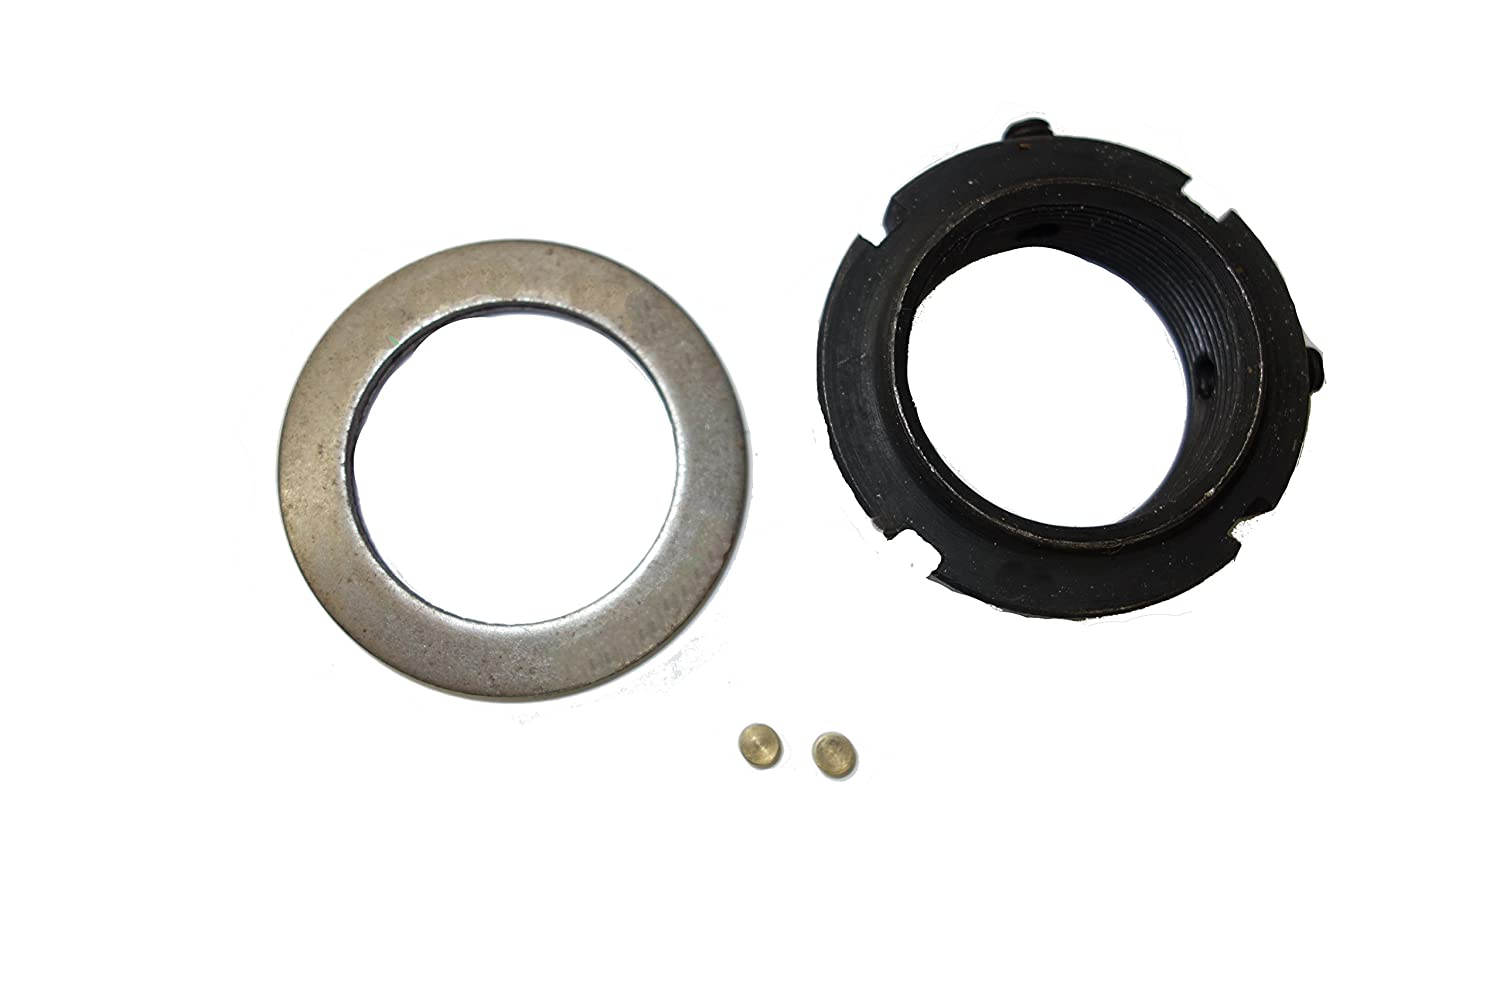 ZBAG NV27134M GM NV4500 Transmission Up Dated 5th Gear Nut Kit Zumbrota Bearing and Gear